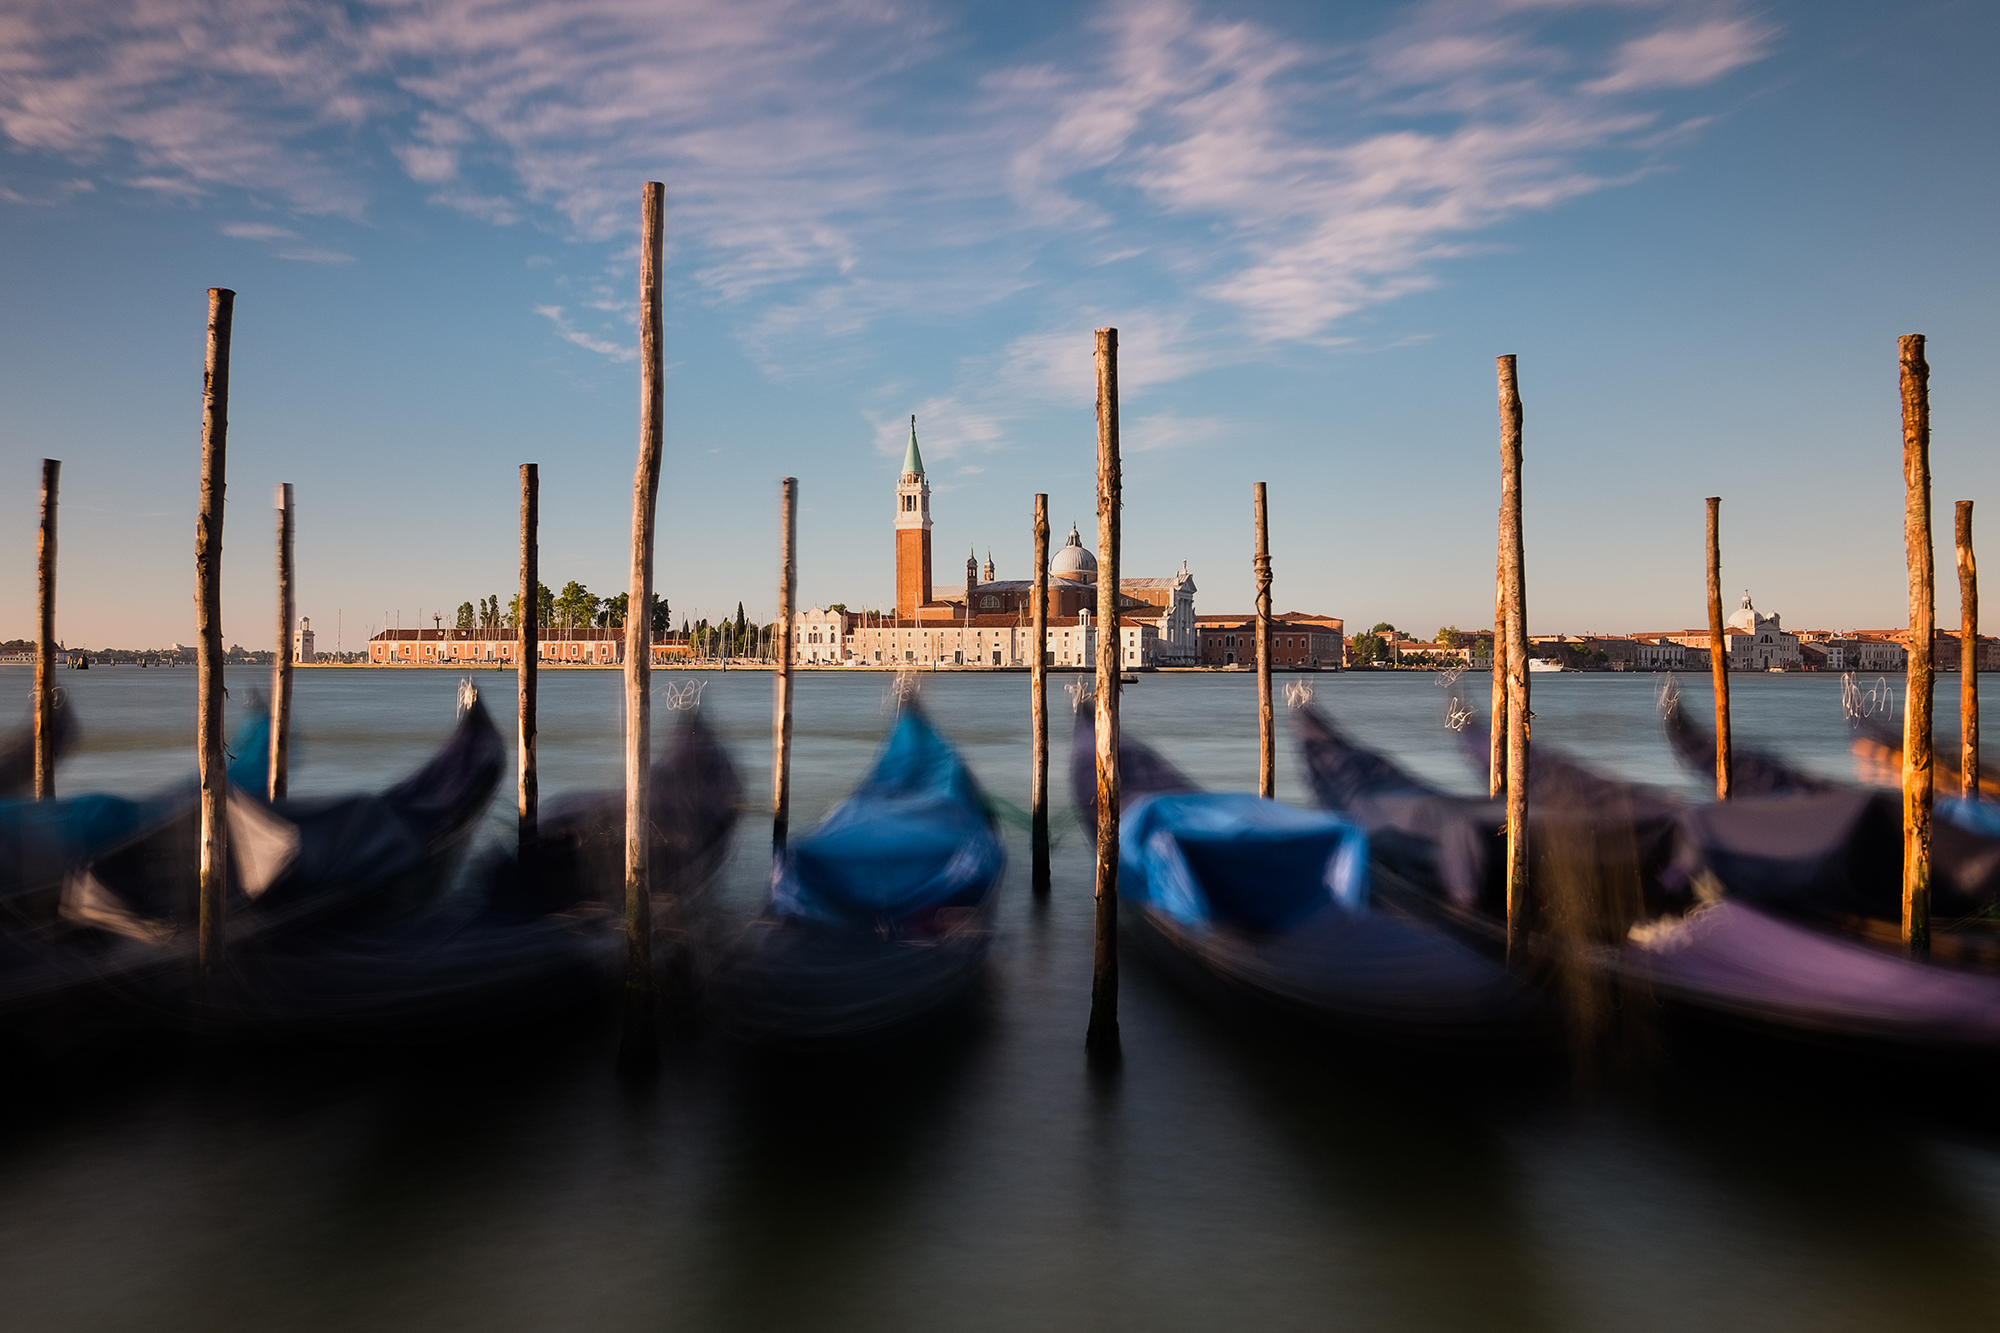 A photo of floating Gondolas in the morning taken by Trevor Sherwin